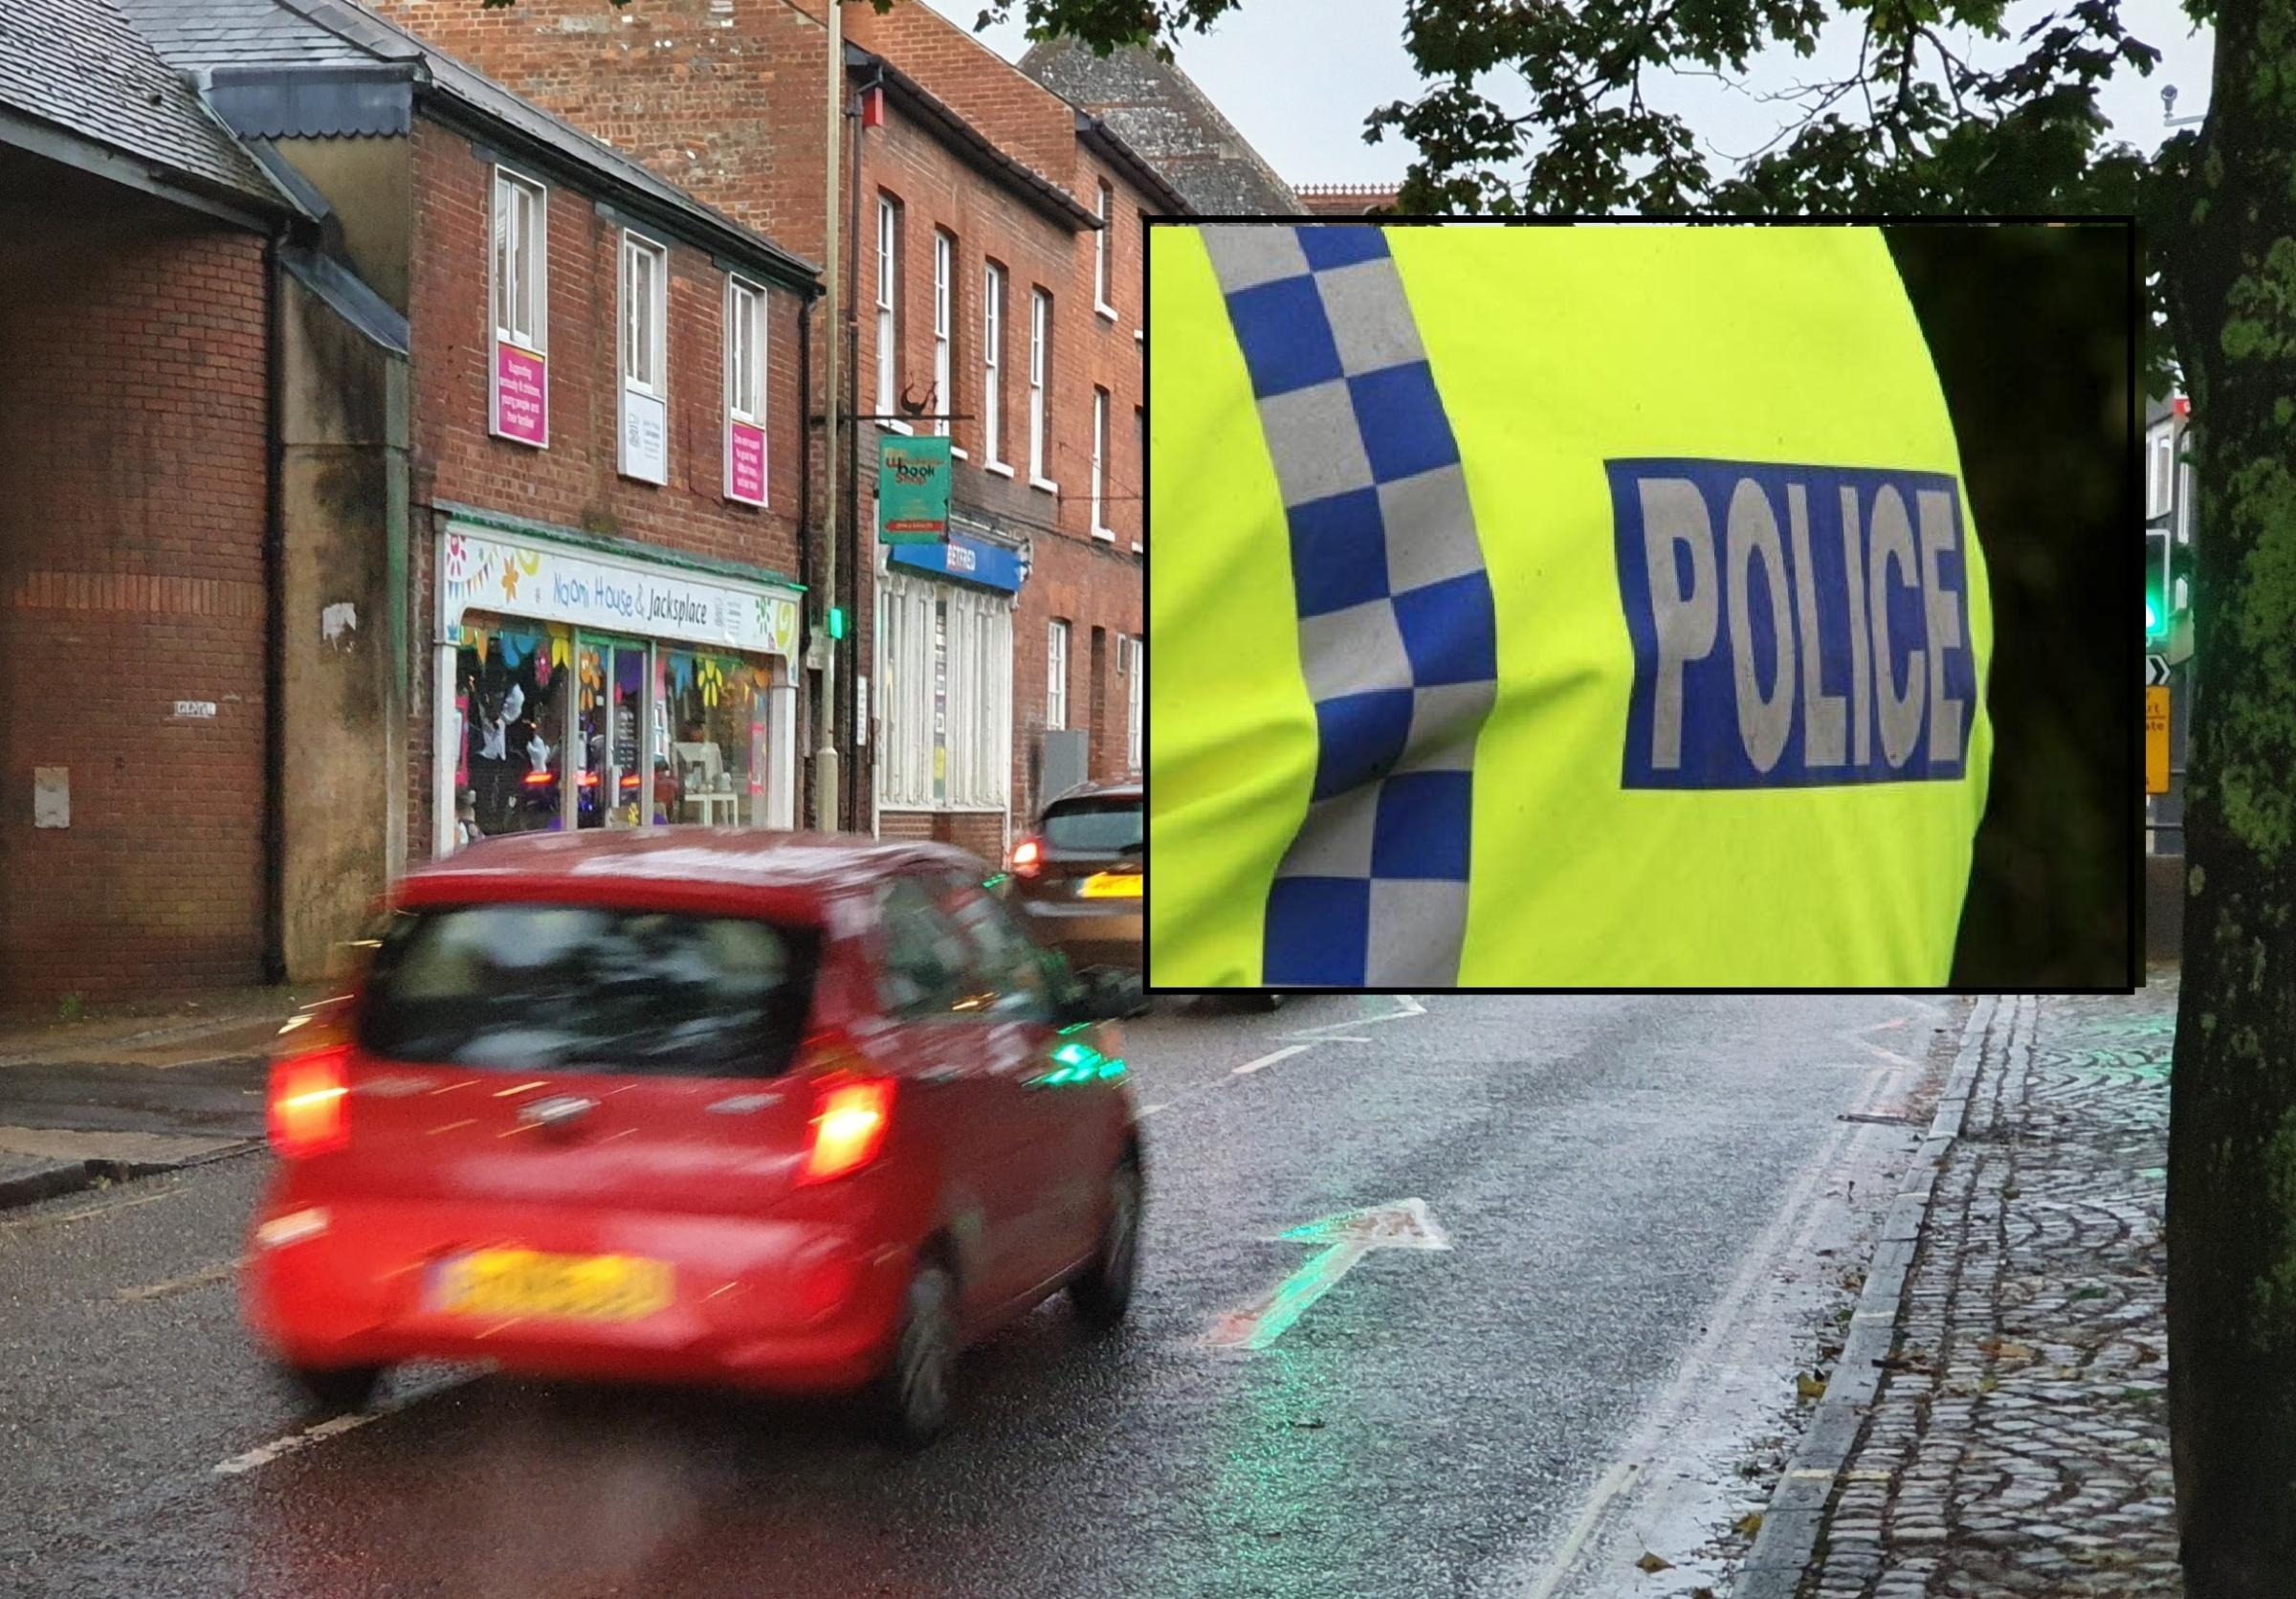 Man arrested on suspicion of attempted rape in relation to Winchester attack